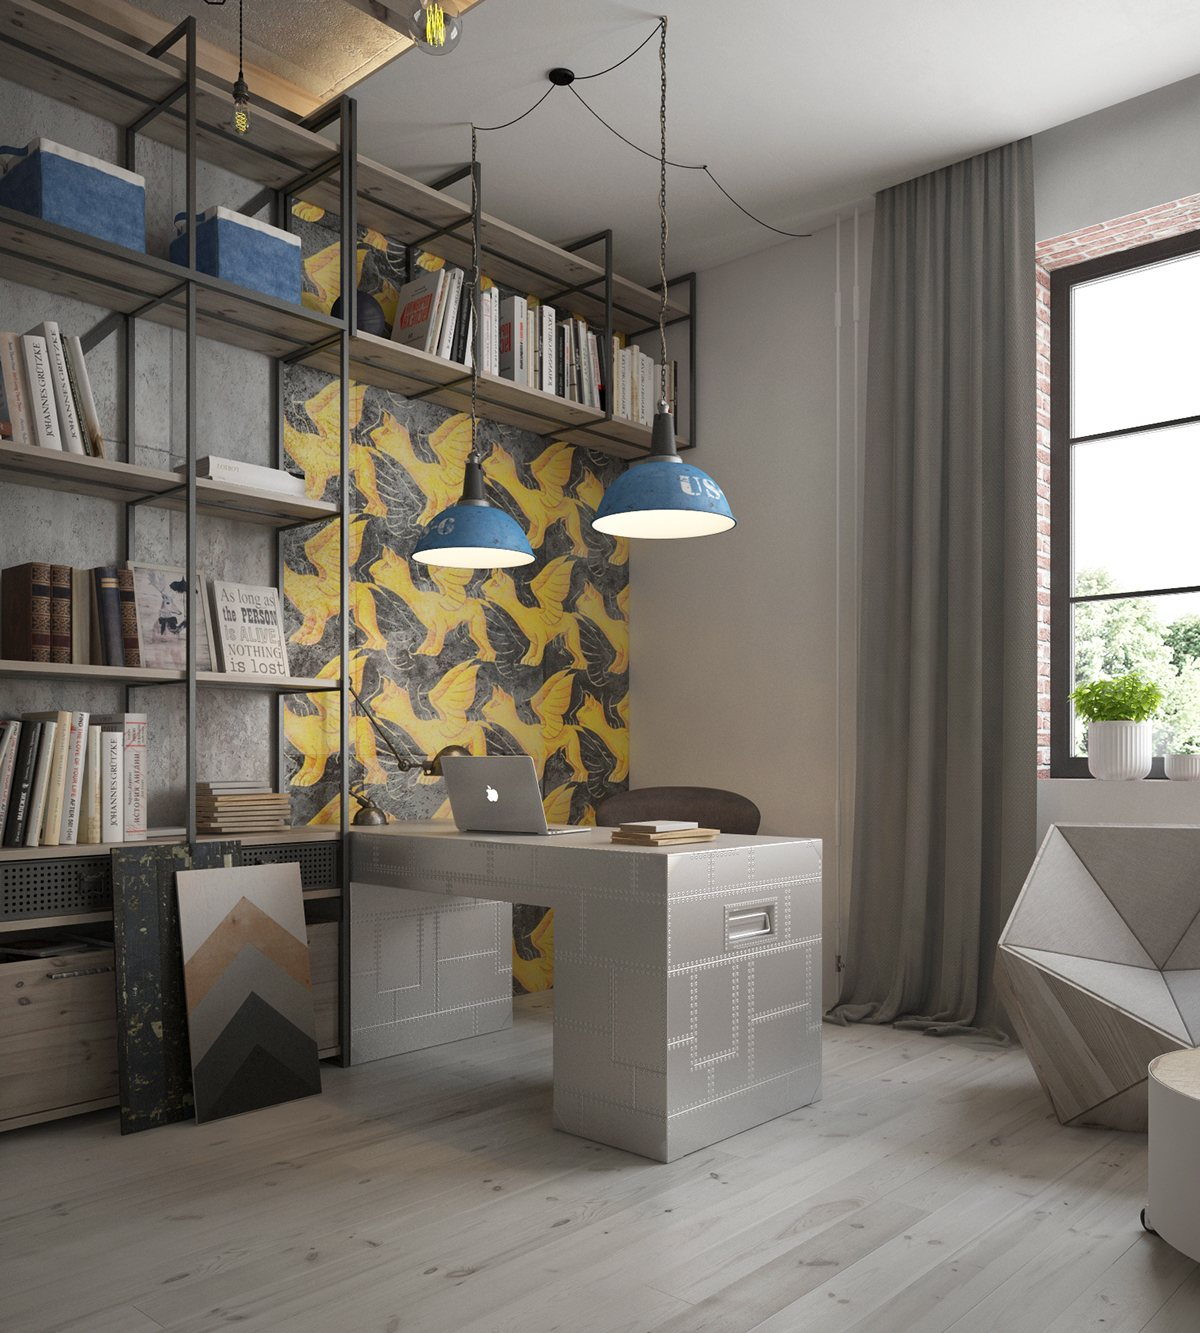 33 Inspiring Industrial Style Home Offices That Sport Beautiful Workspaces images 10